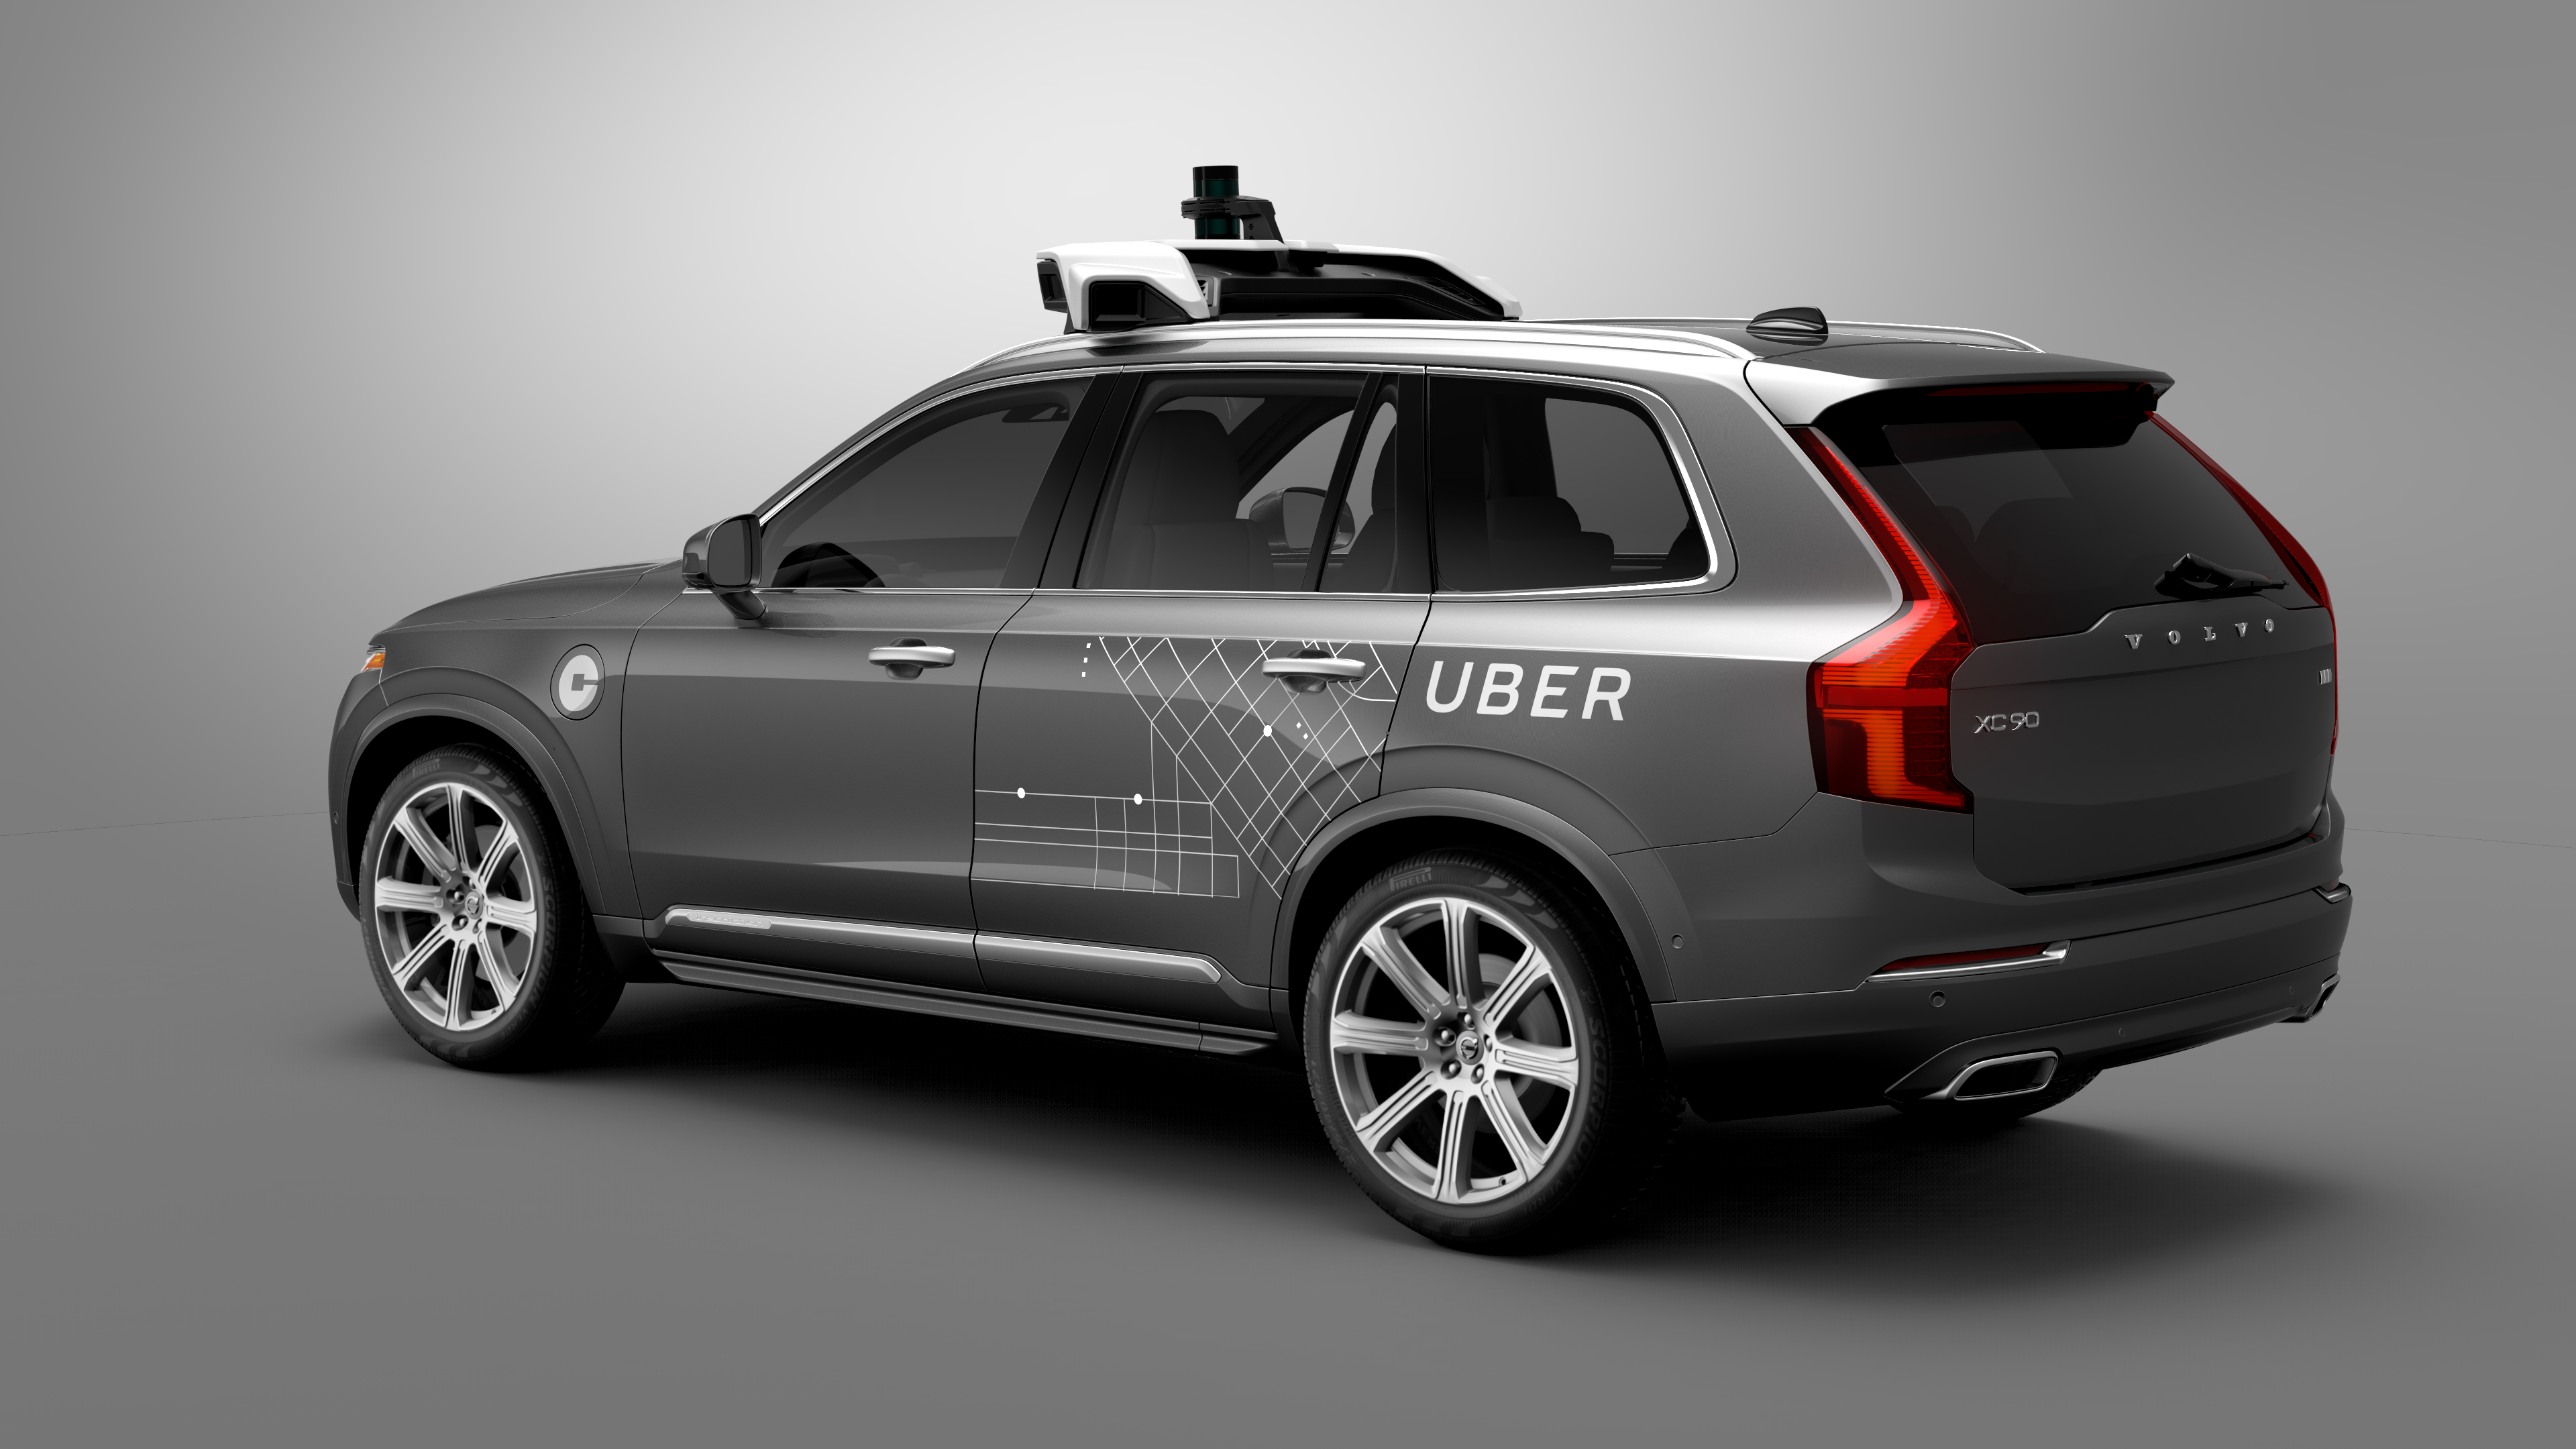 Uber is working with Volvo to develop self-driving features on Volvo's XC90 in order to someday allow customers to hail autonomous rides via the Uber app.